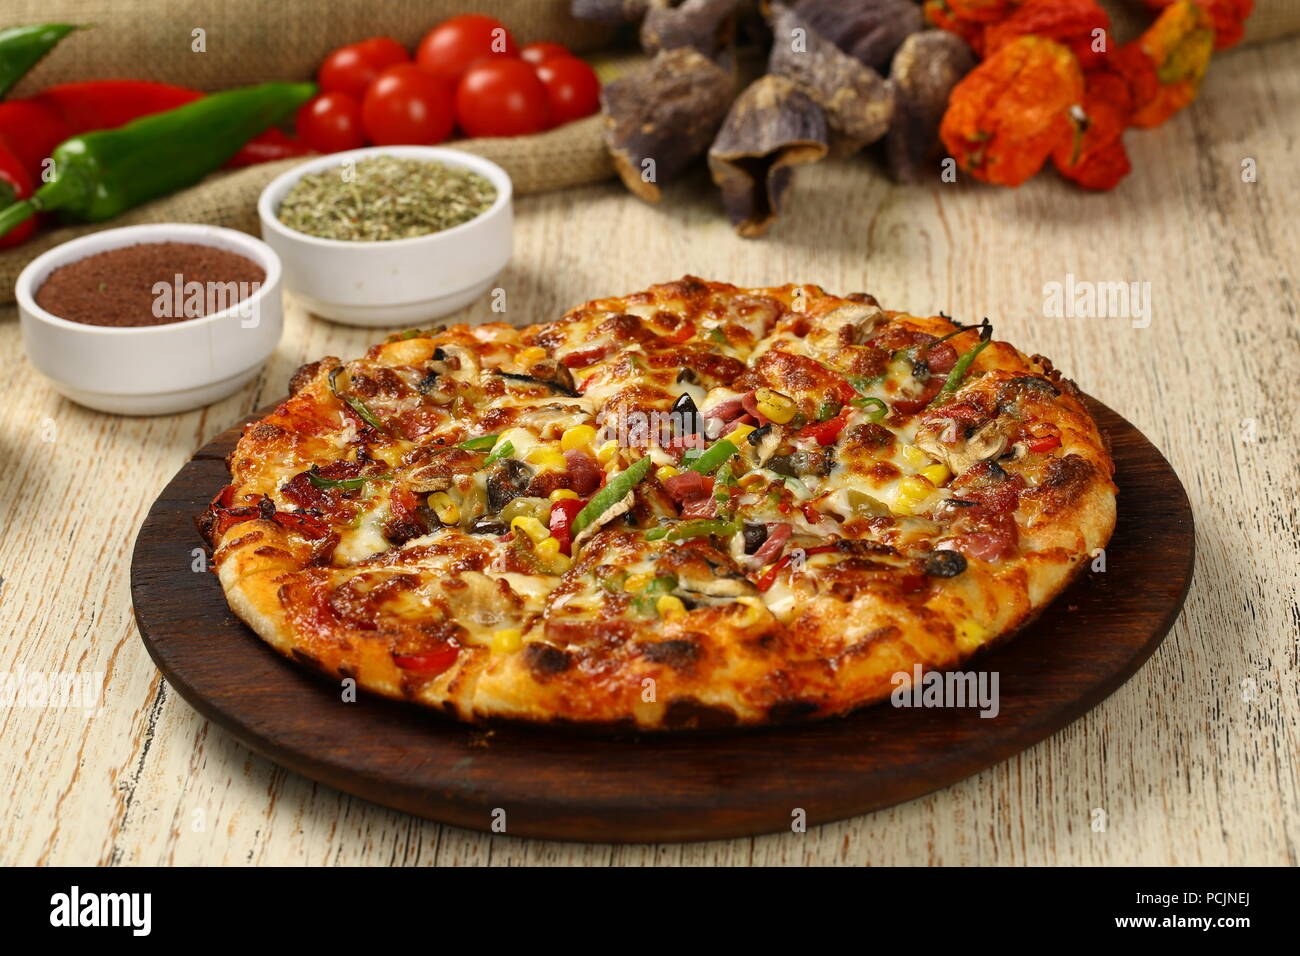 Delicious italian pizza on the wood table - Stock Image